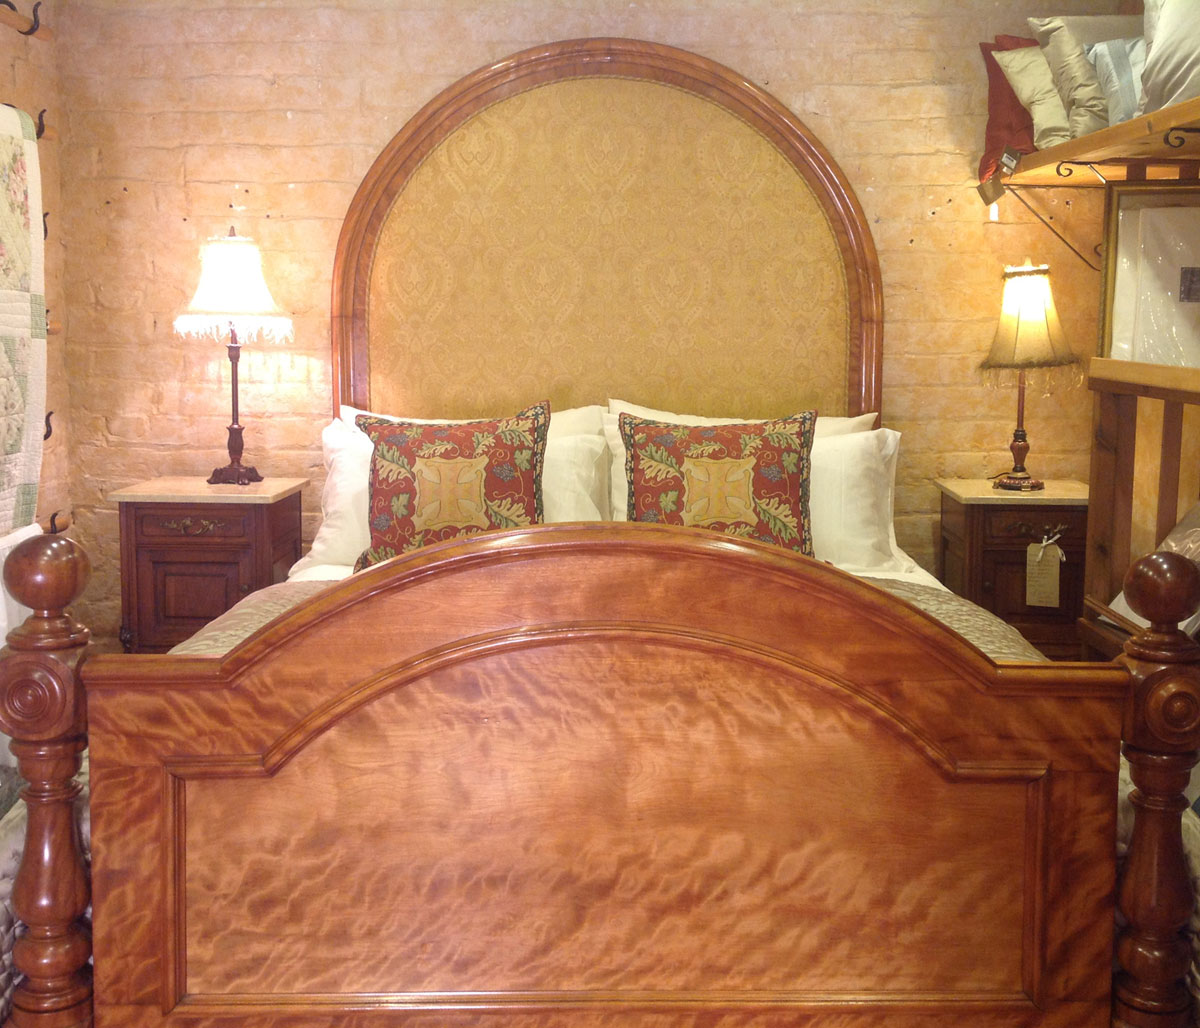 Old Wooden Bed ~ Upholstered arched antique wooden bed